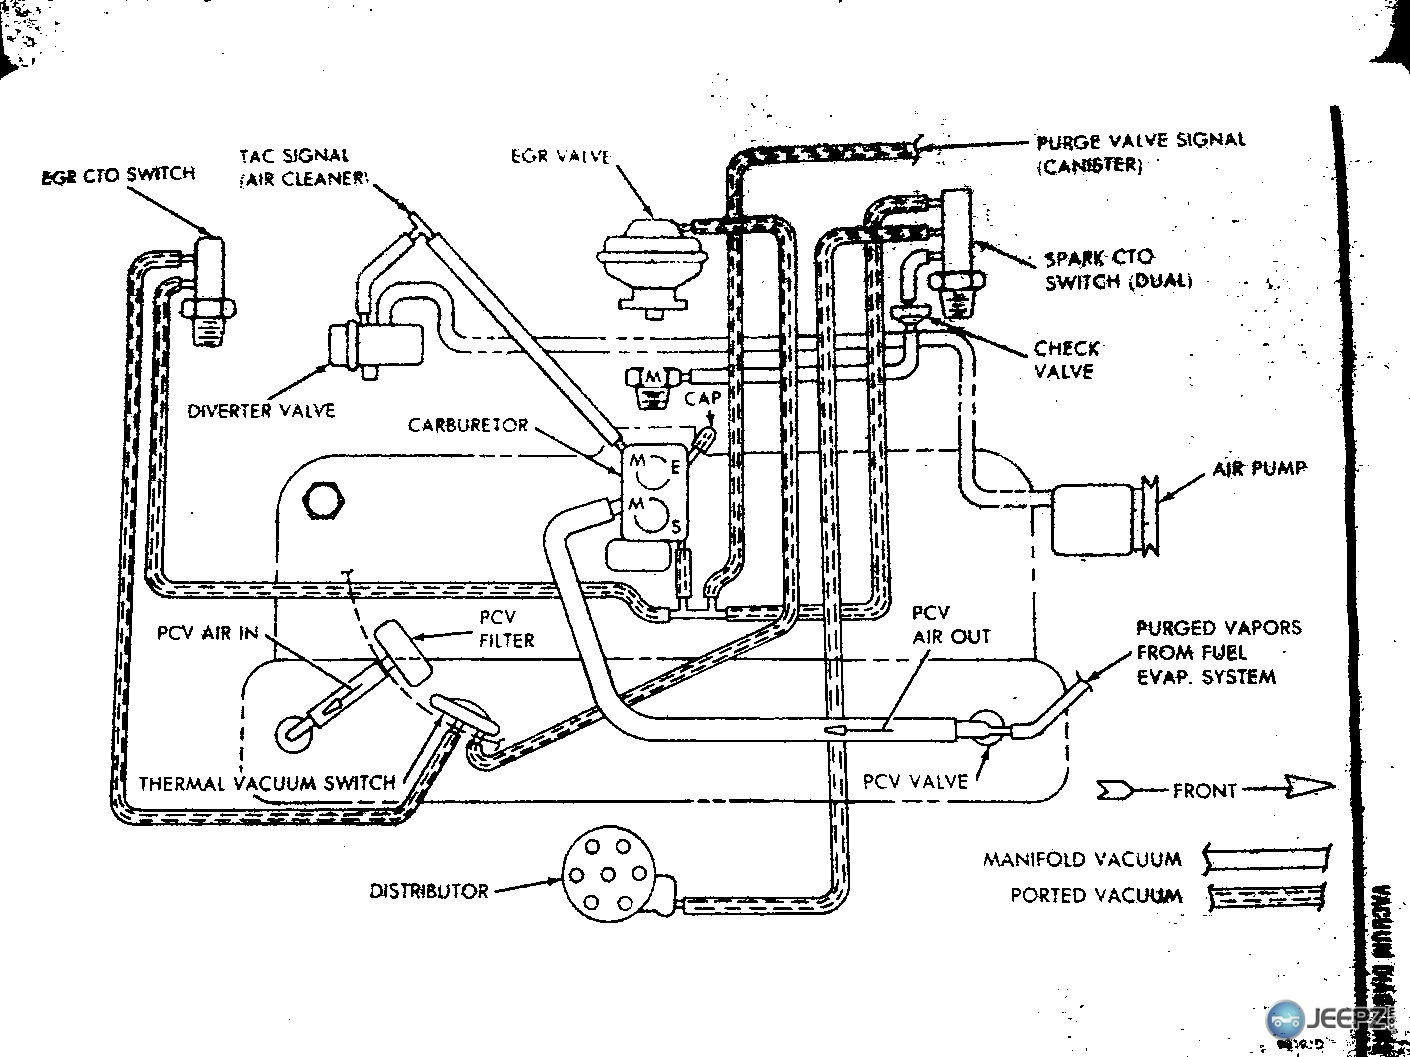 85 Cj7 Wiring Diagram Library 1980 Oldsmobile Ignition